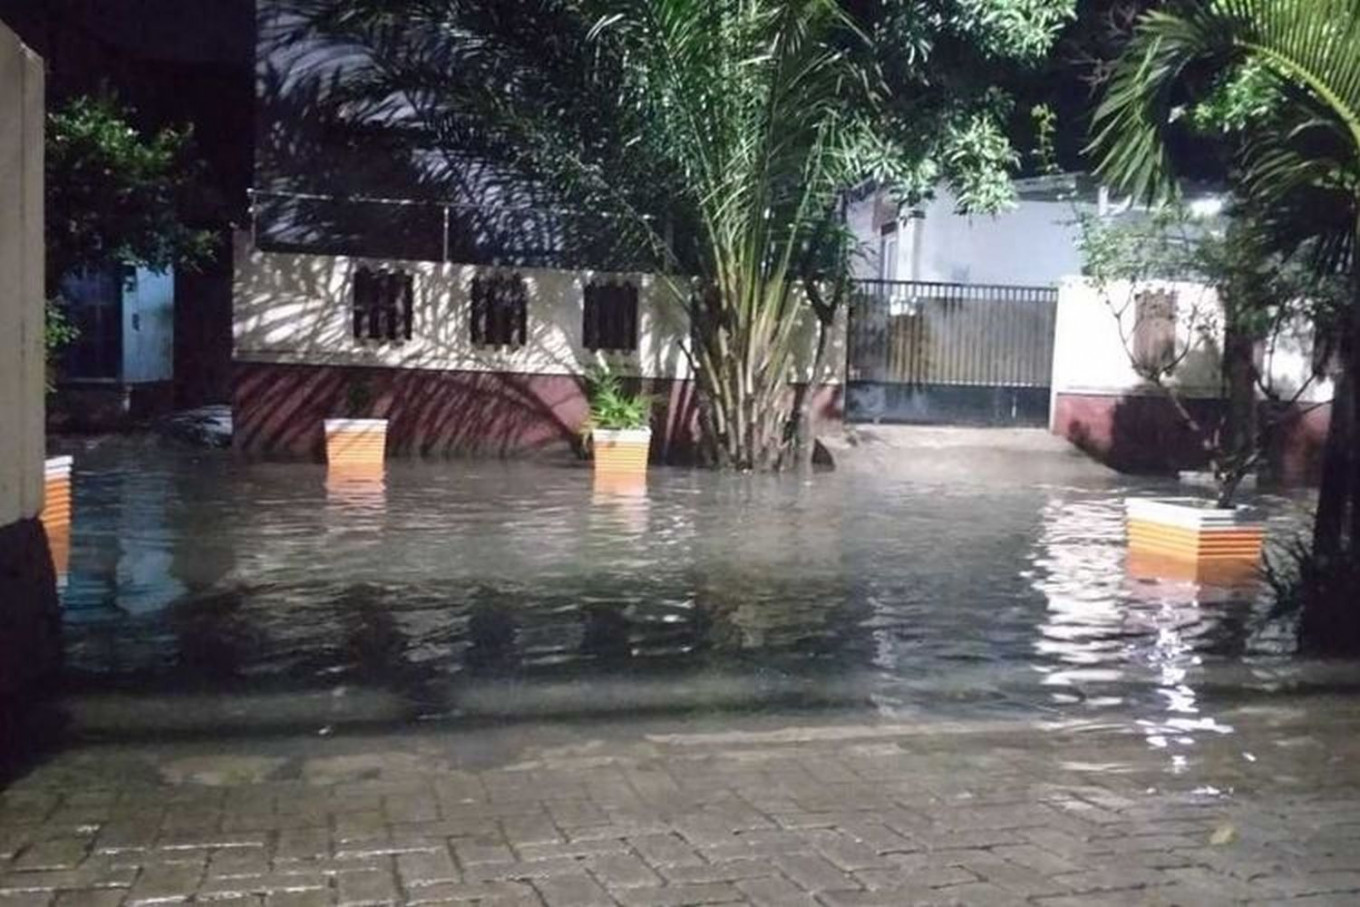 Jakarta to prepare tents for displaced COVID-19 patients during floods